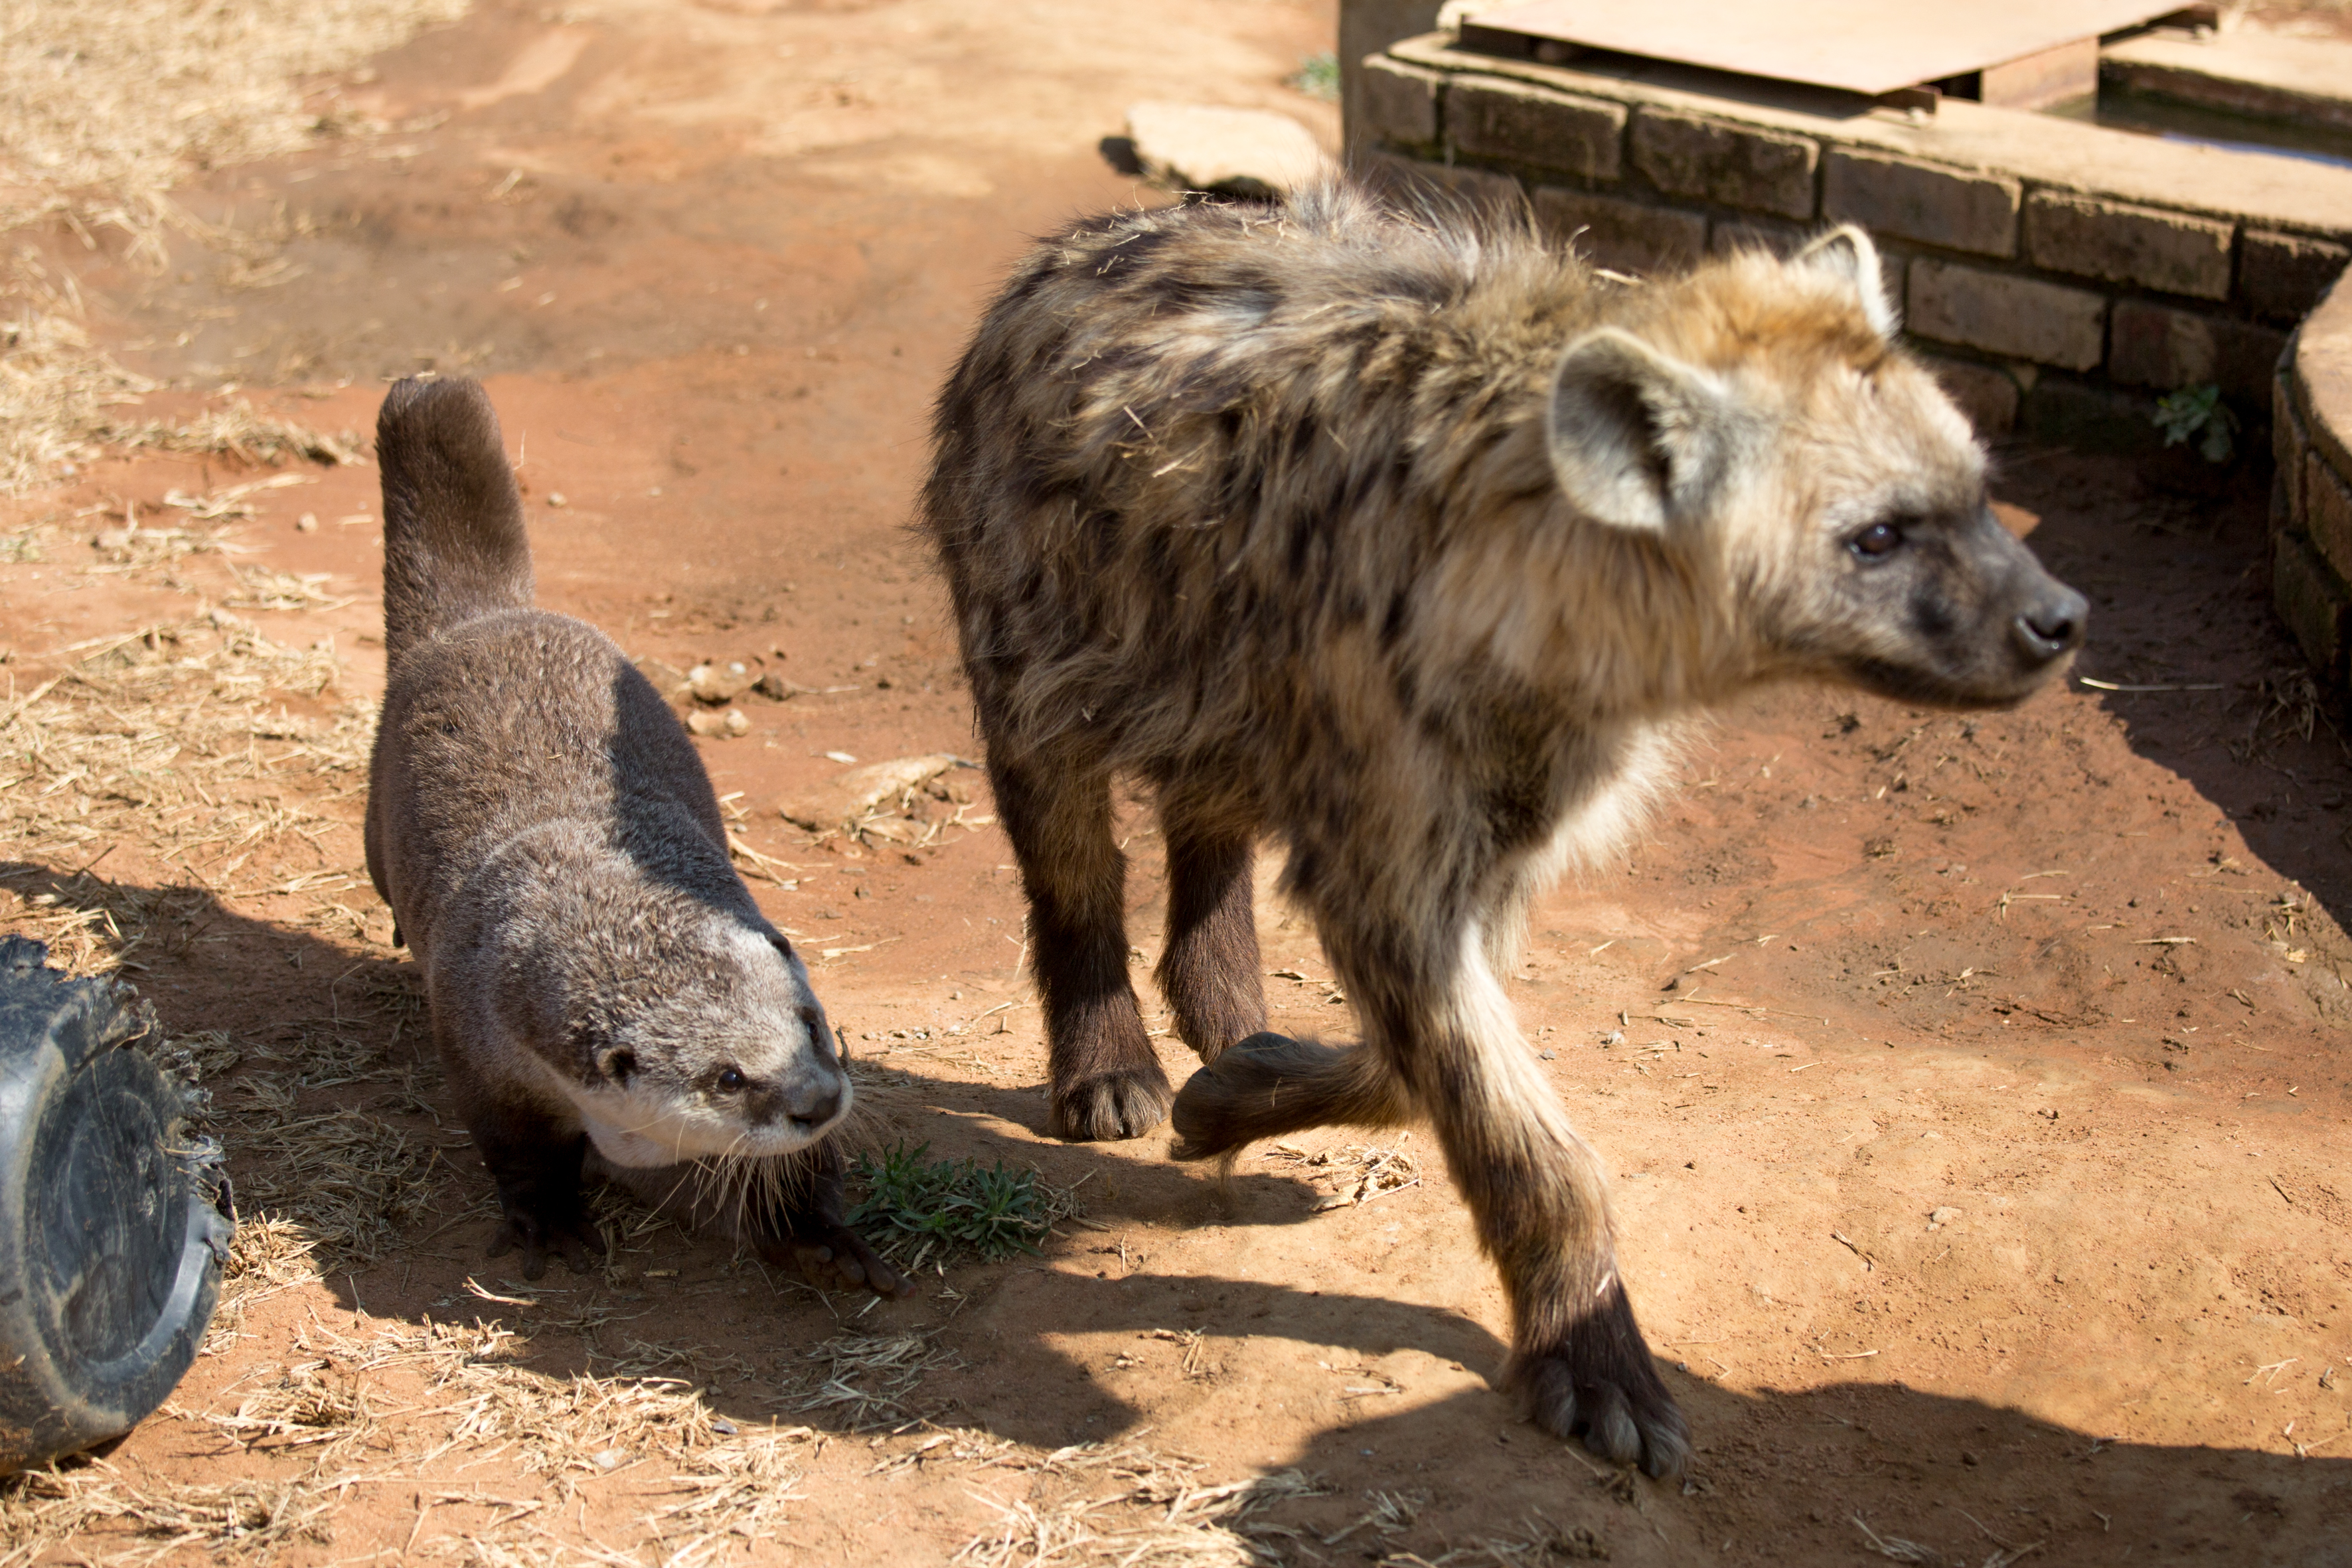 Abc7 News Cute Otter Is Best Friends With Lions And Hyenas